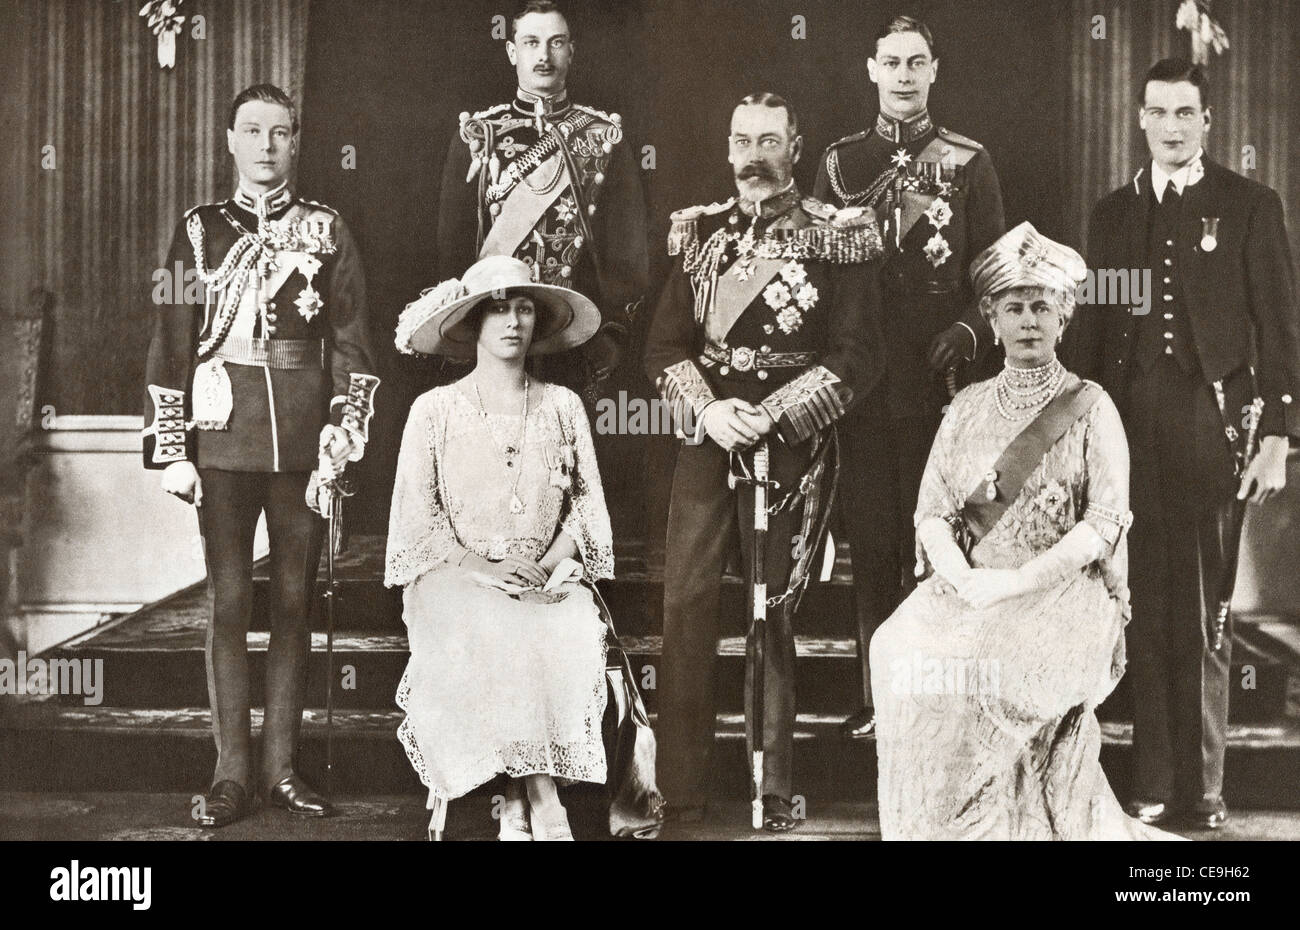 Royal family of King George V of England - Stock Image